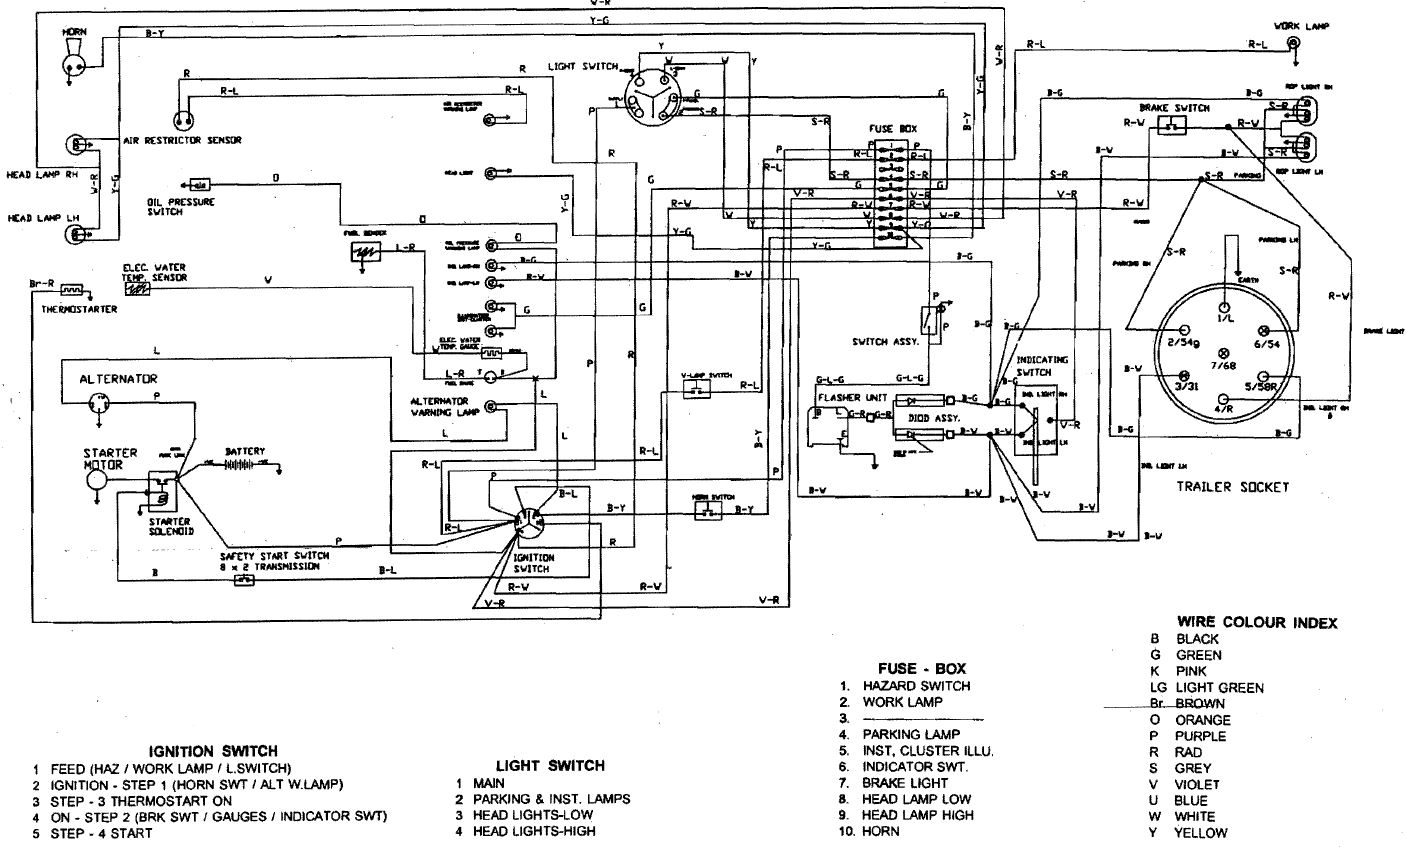 20158463319_b82d524c3d_o ignition switch wiring diagram bobcat ct235 compact tractor wiring diagram at gsmx.co